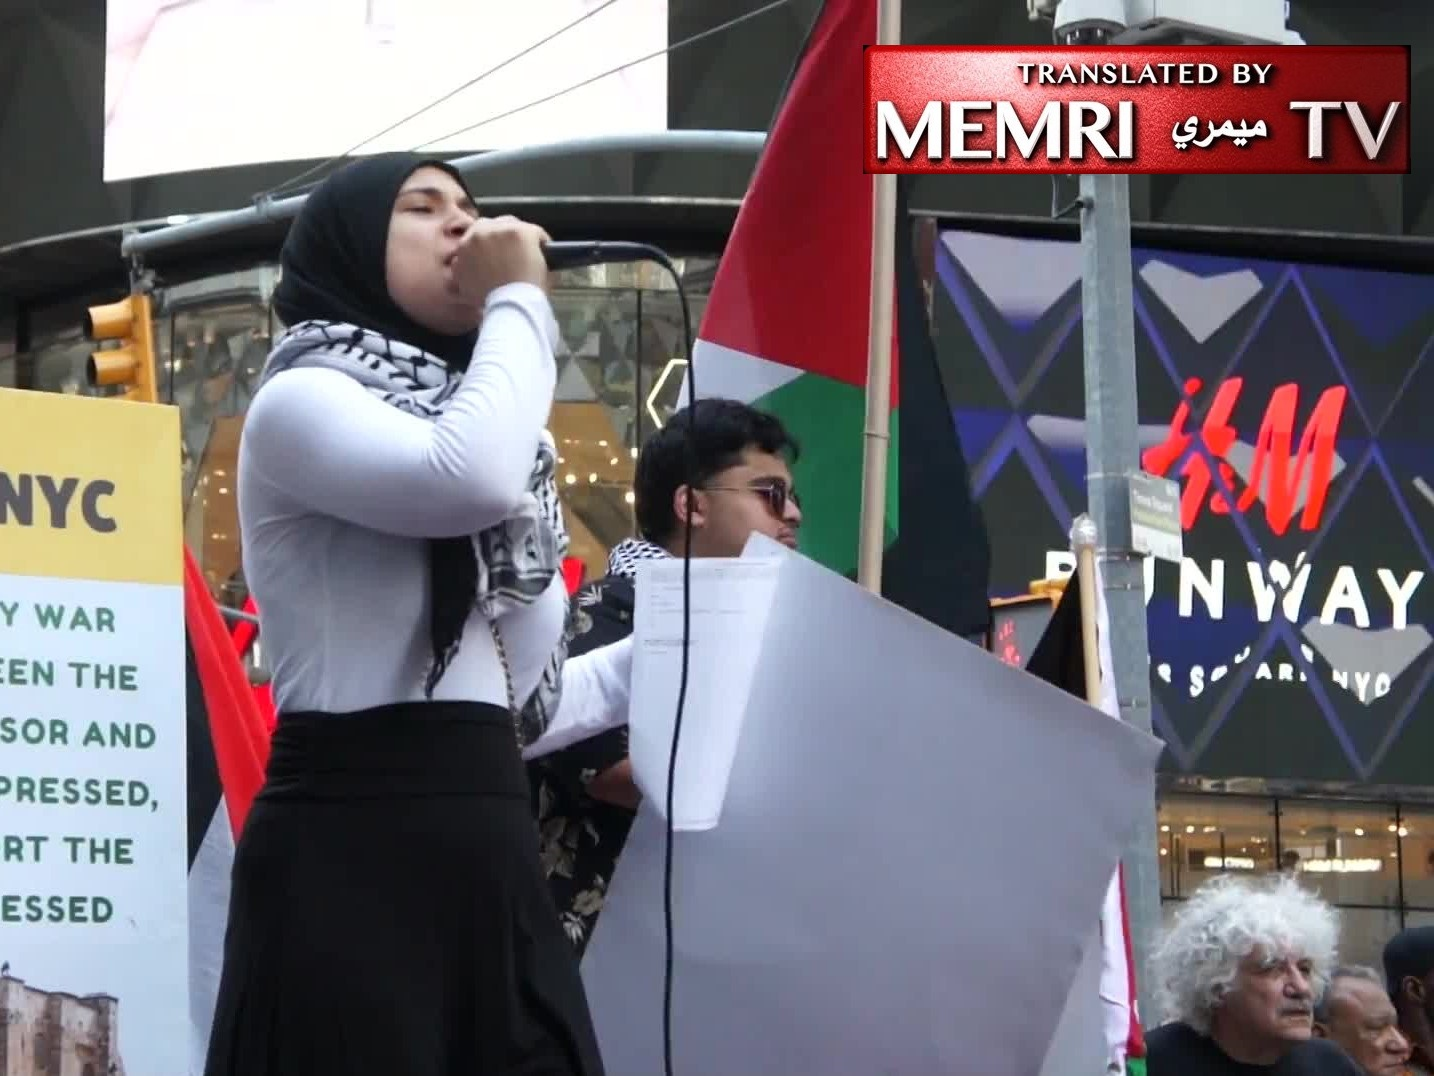 Quds Day Rally in Times Square, New York: Speakers Compare Gaza to Warsaw Ghetto, Call for Intifada